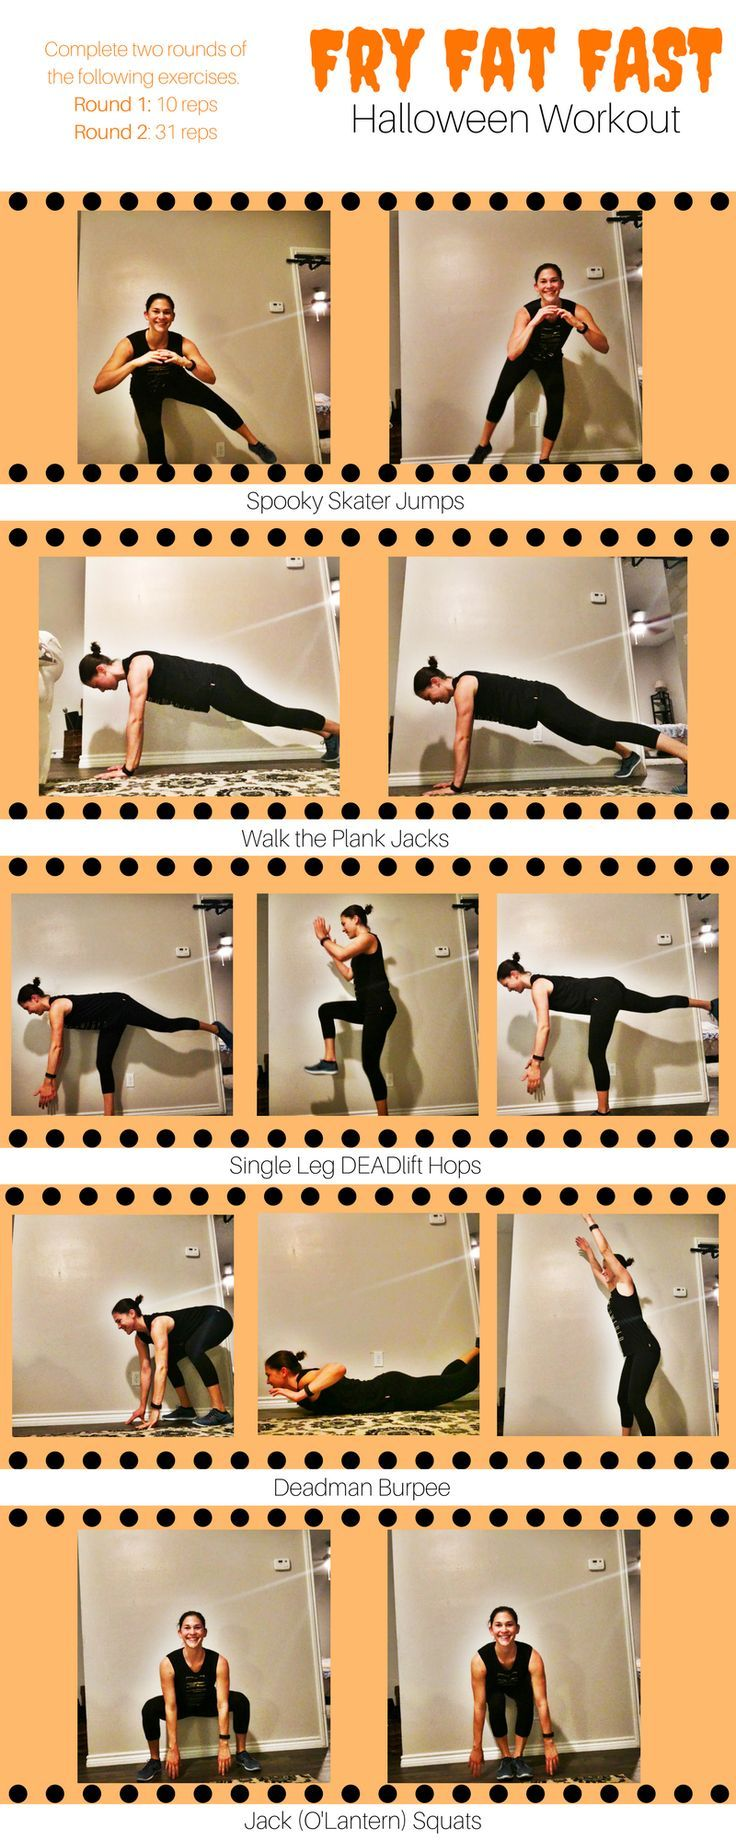 My treat for you is a bodyweight halloween workout you can do absolutely anywhere. Bodyweight workouts are possibly the most effective way to improve your relative strength while also getting a cardio burn. And I'm all about improving that relative strength! That being said, the other key benefit of incorporating bodyweight training into your routine, especially if you would otherwise skip a workout, is that you can get your sweat on anywhere.